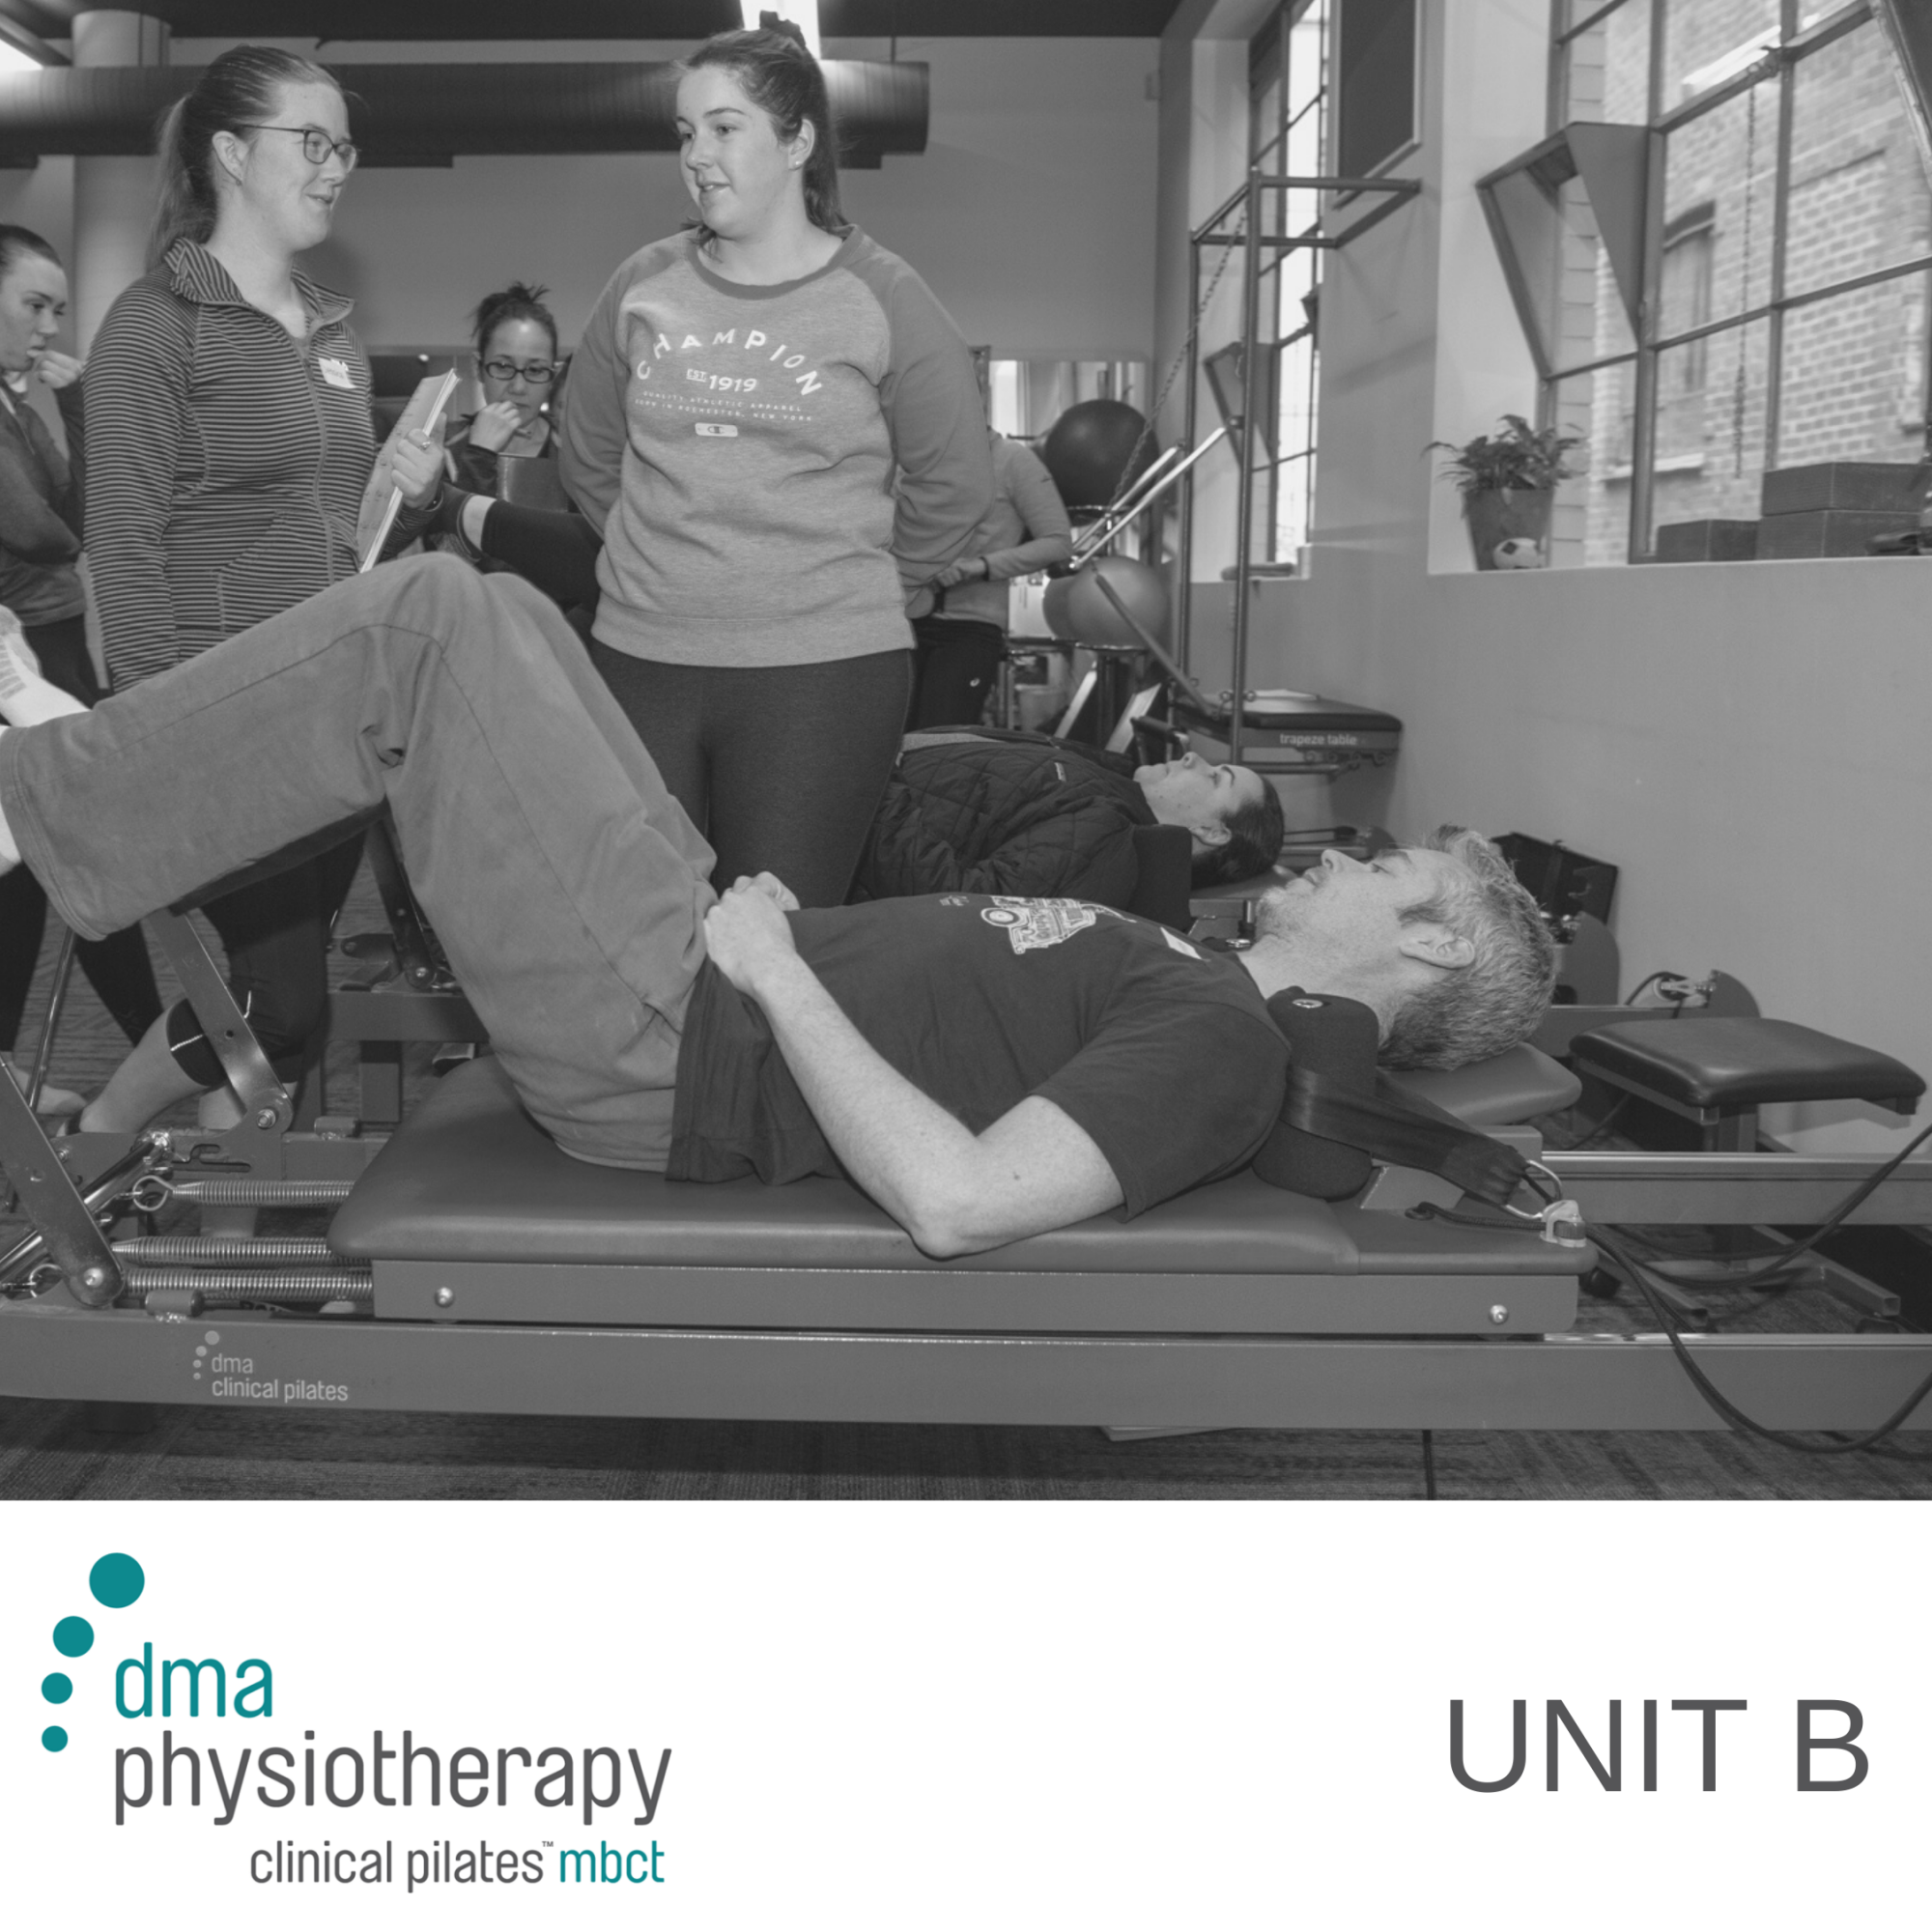 Clinical Pilates courses for physiotherapists